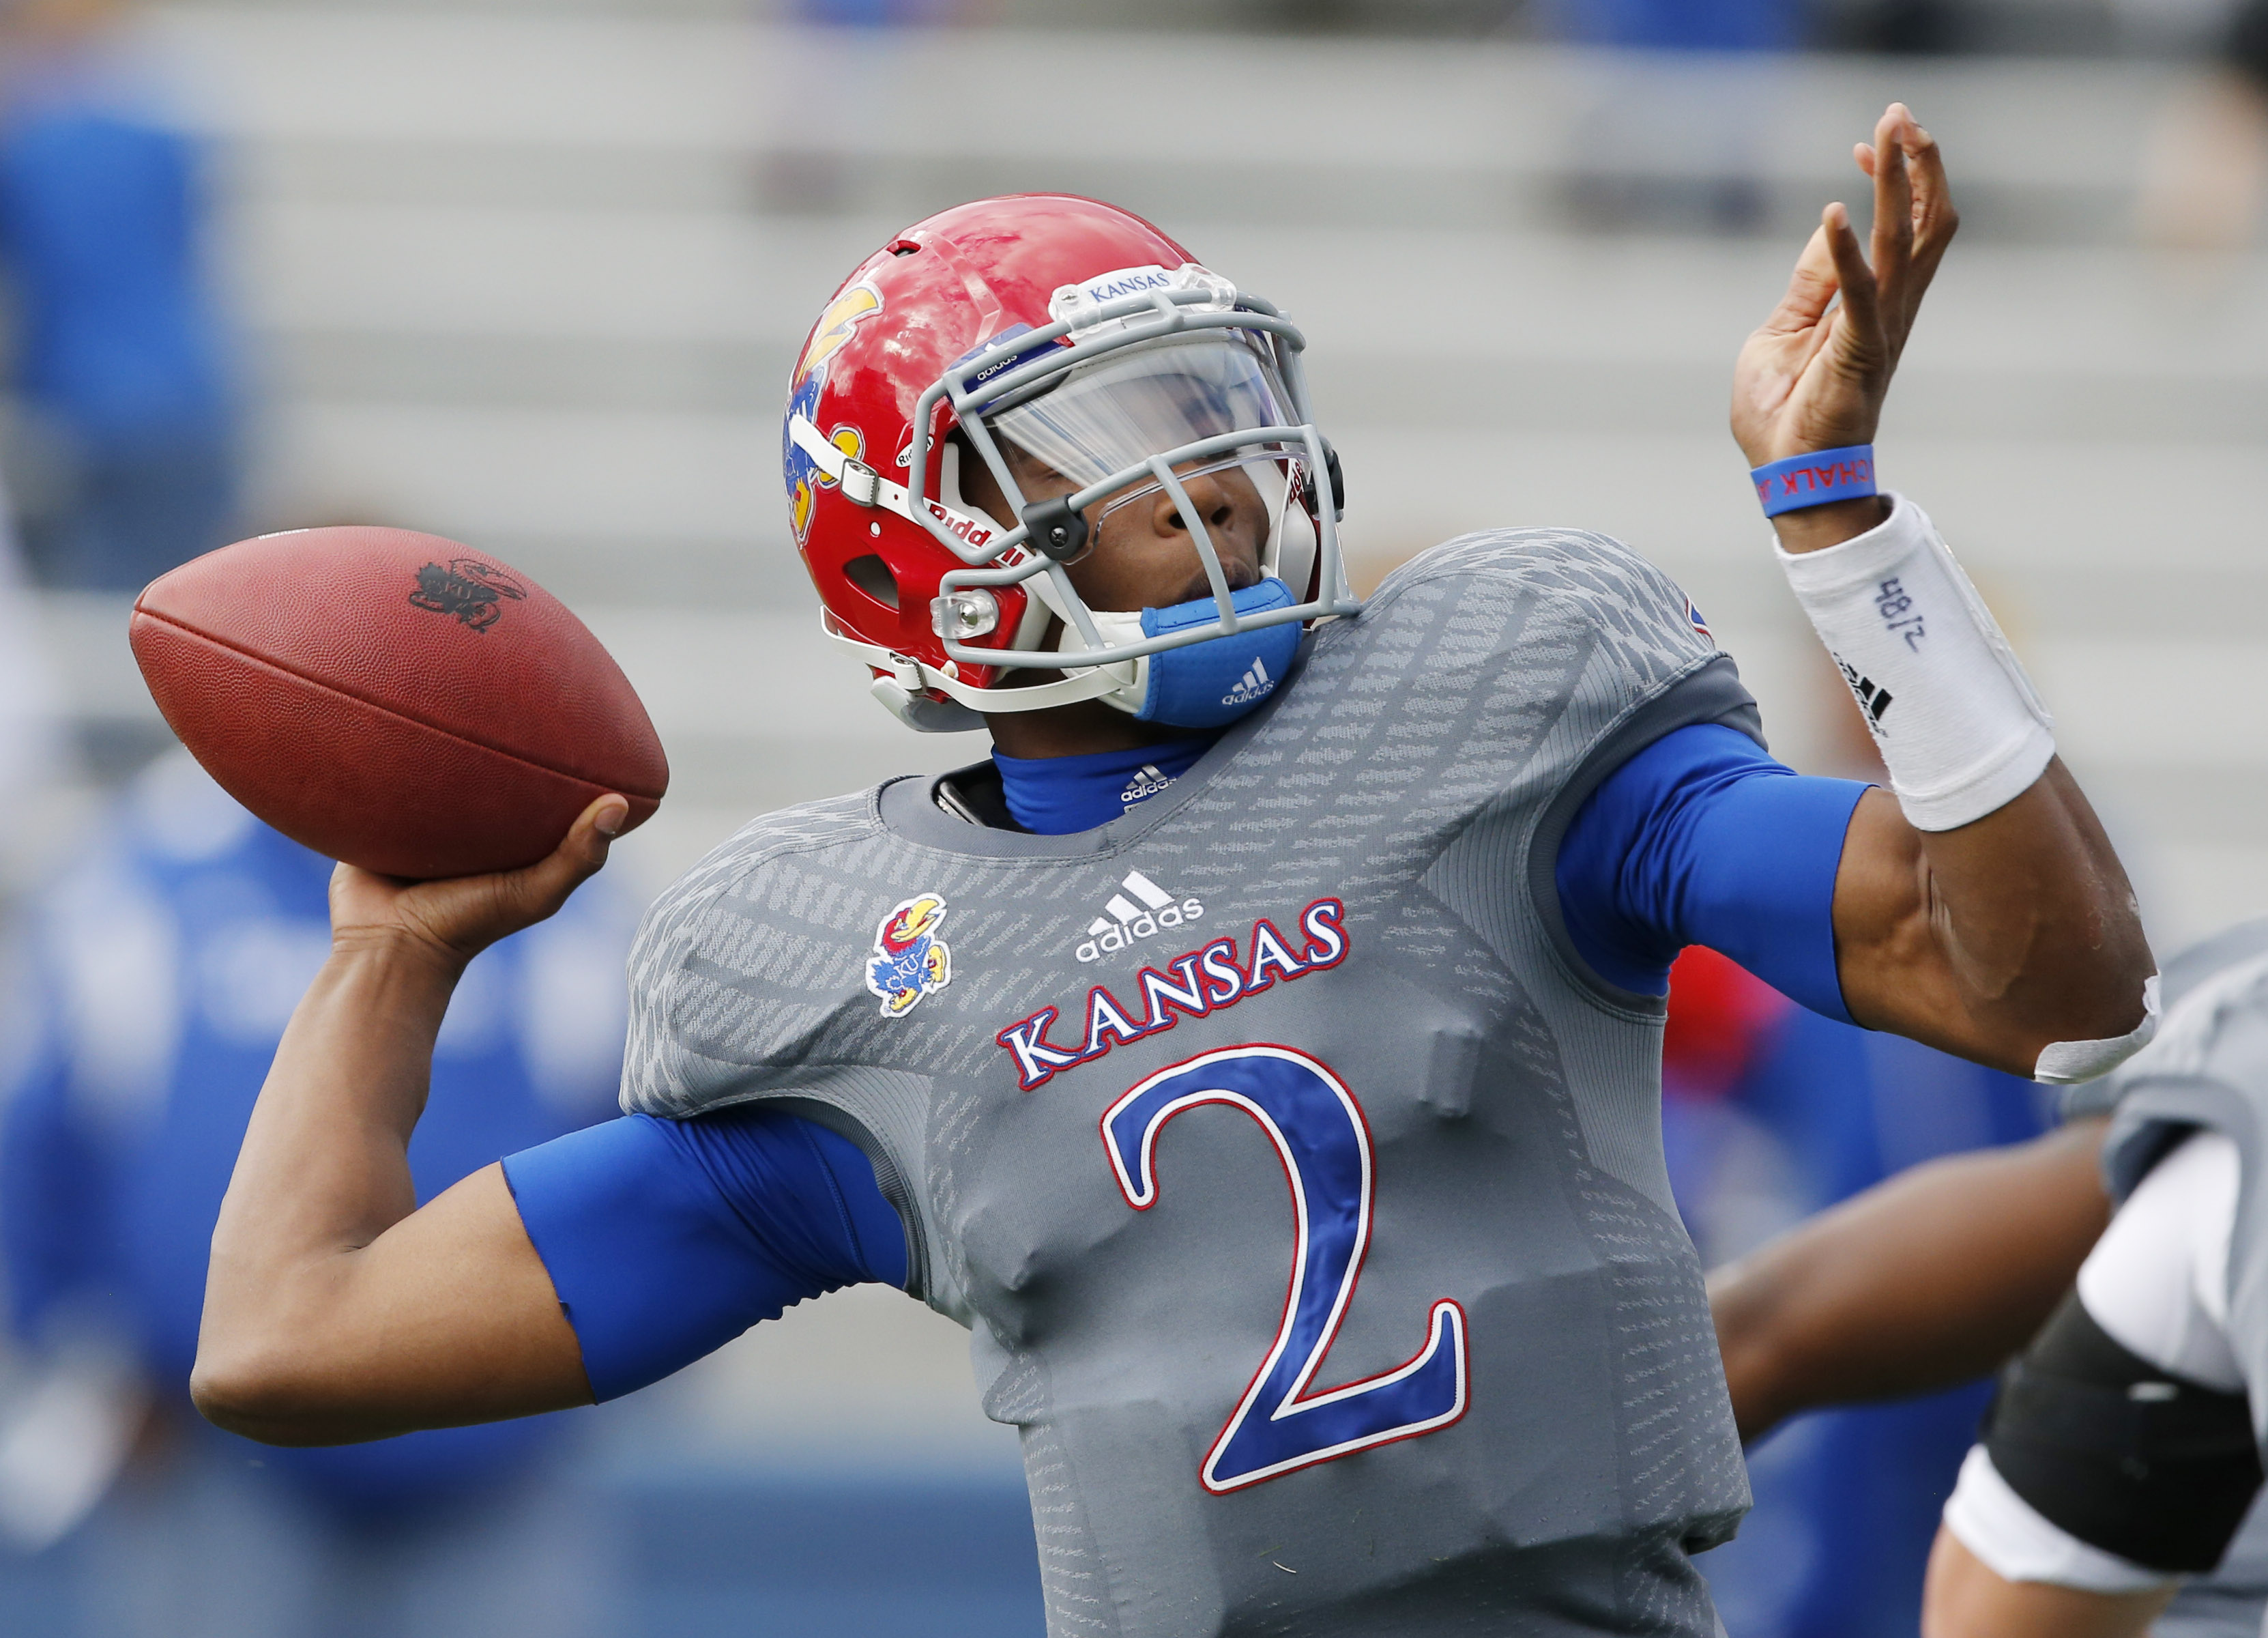 Blocking? Yep, Kansas wide receivers becoming pros